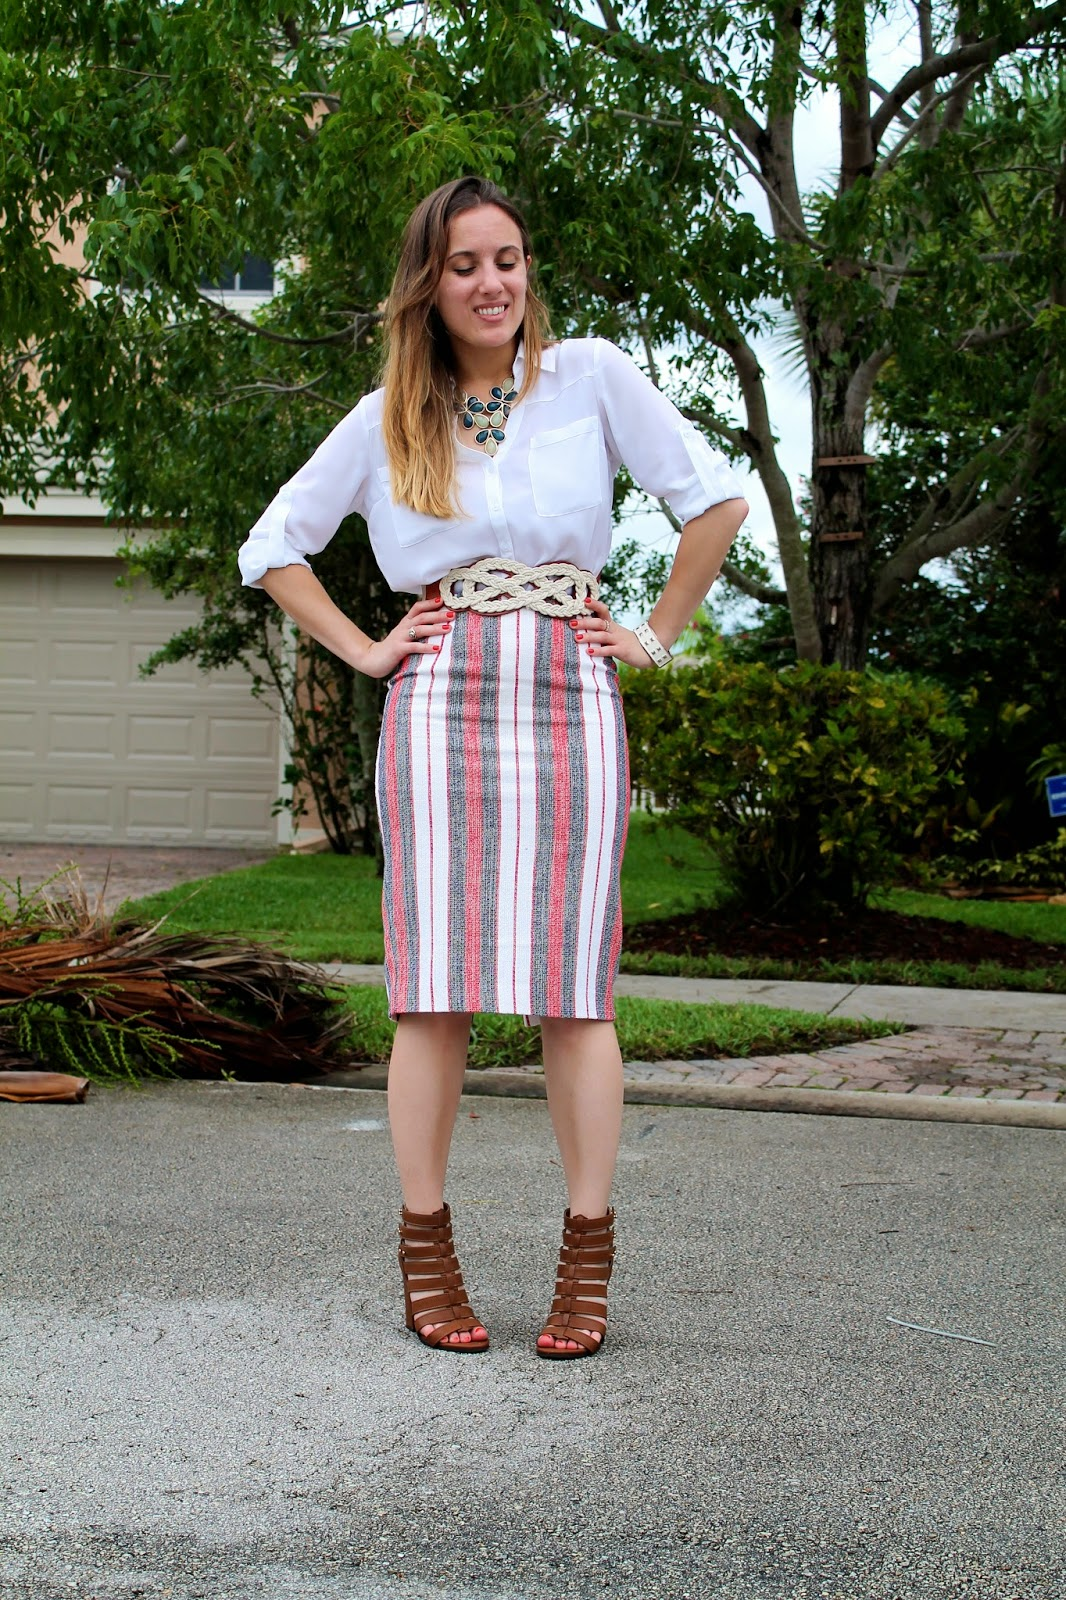 Express, Steve Madden, Anthropologie, ASOS, Forever 21, Nordstrom, July 4th style, street style, Miami fashion blogger, Miami blogger, Miami, what I wore, lookbook, fashion blog, fashion, style, stripes, red white and blue, America